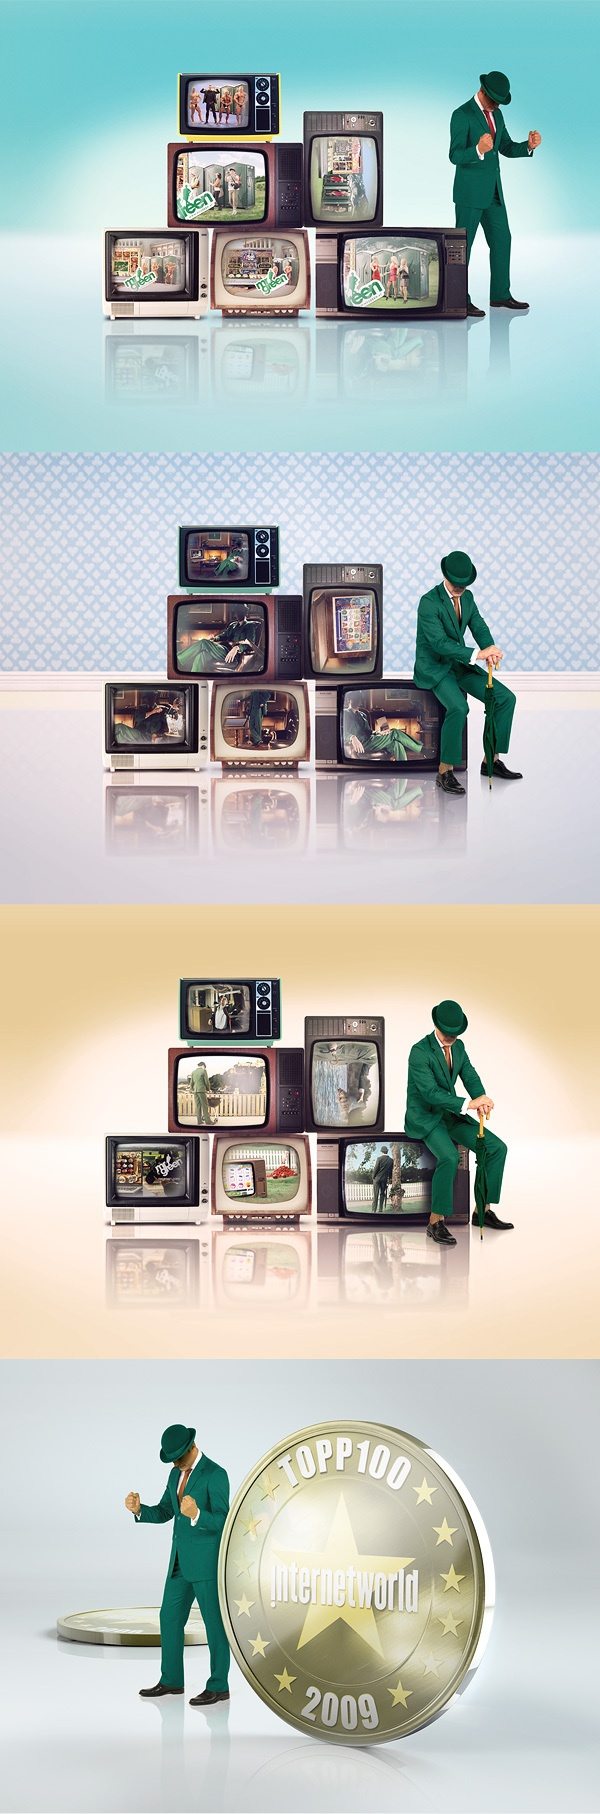 Mr Green - FY by Kristian Sörefelt, via Behance